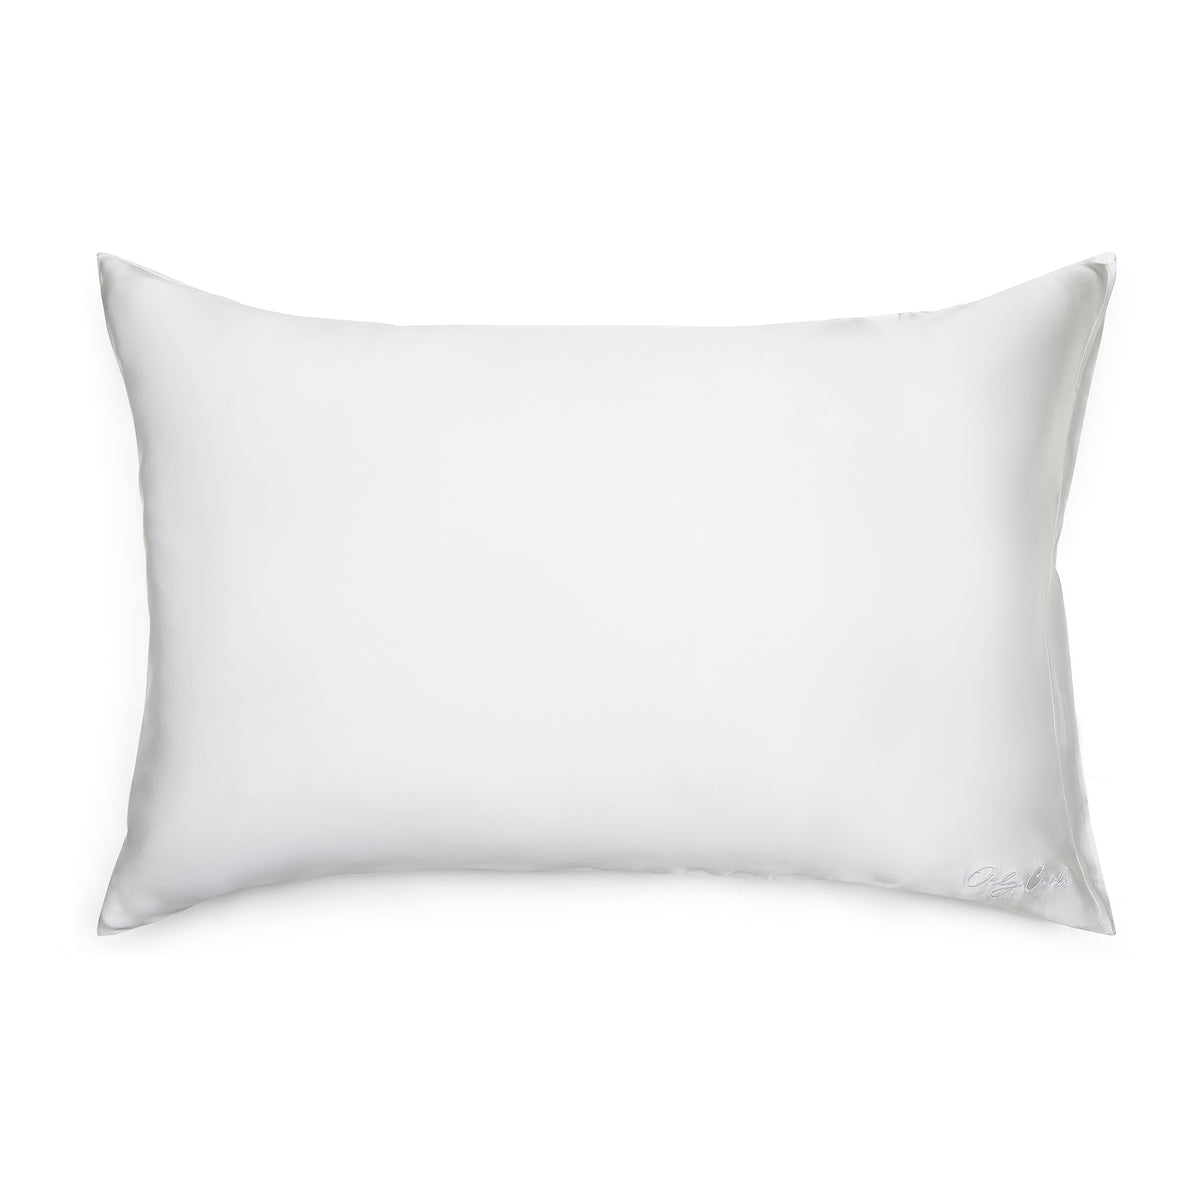 Only Curls Silk Pillowcase - White - Only Curls